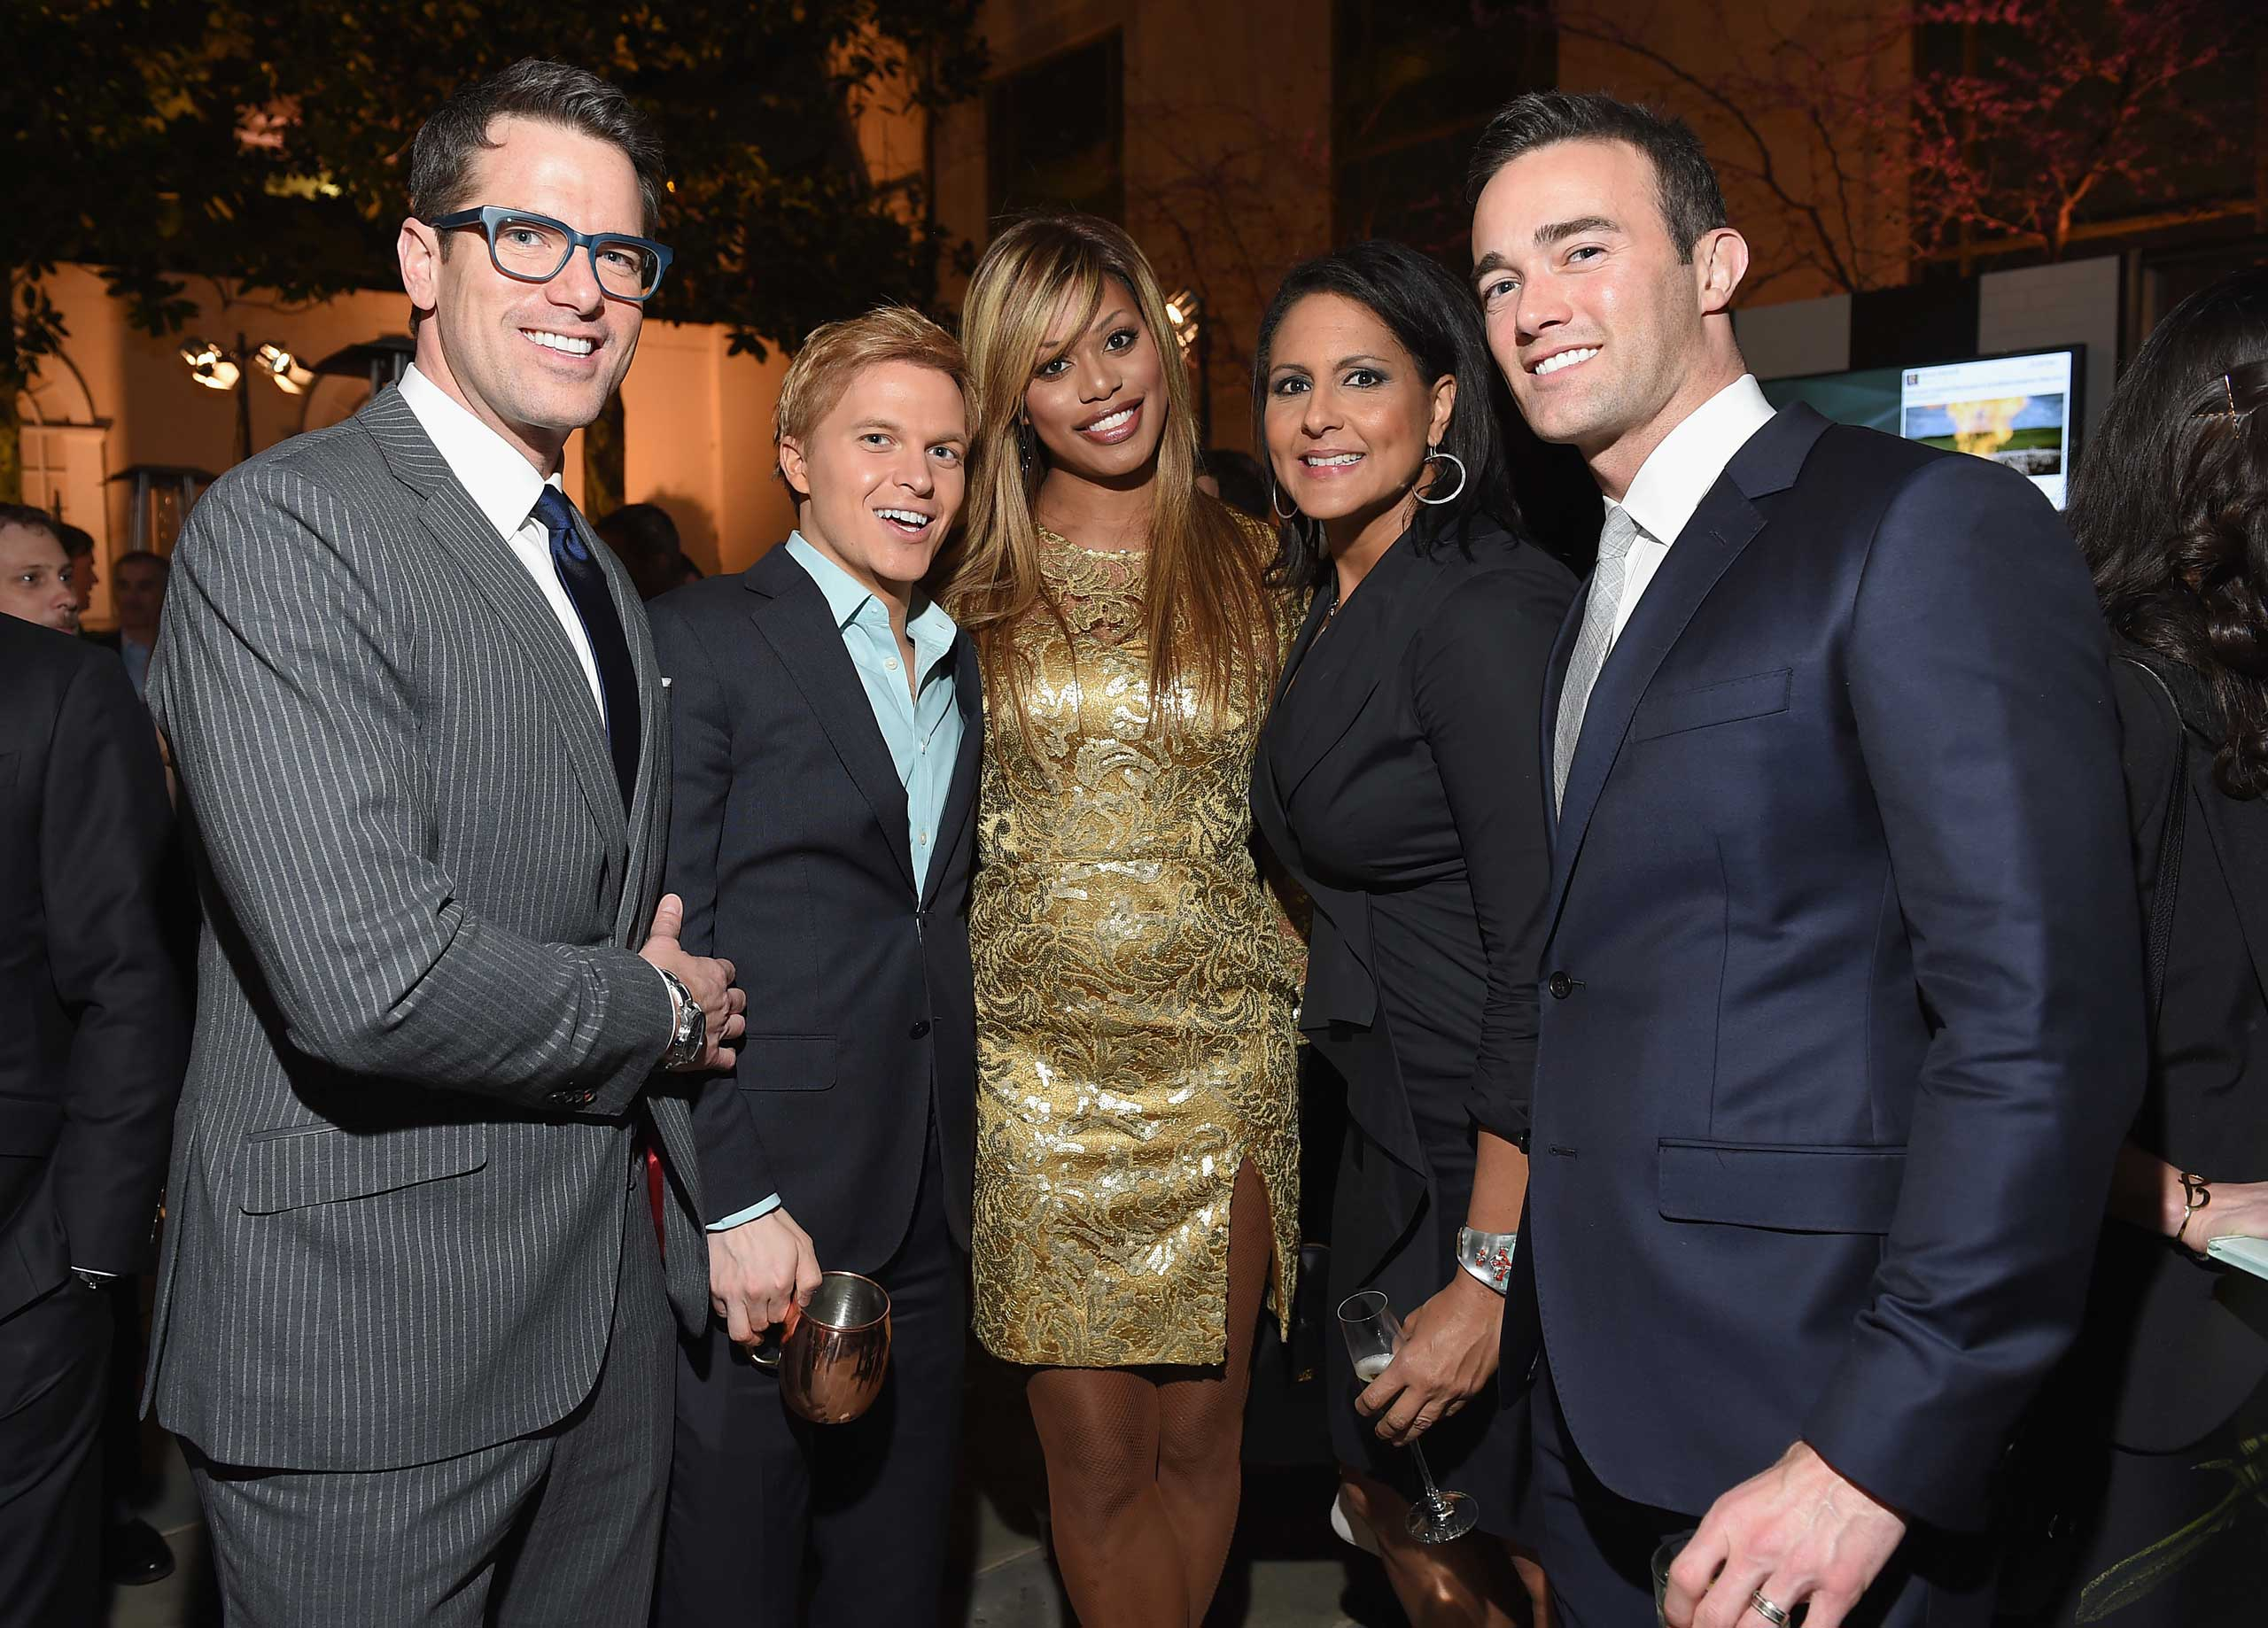 MSNBC's Thomas Roberts and Ronan Farrow, Actress Laverne Cox, MSNBC political commentator Karen Finney and guest